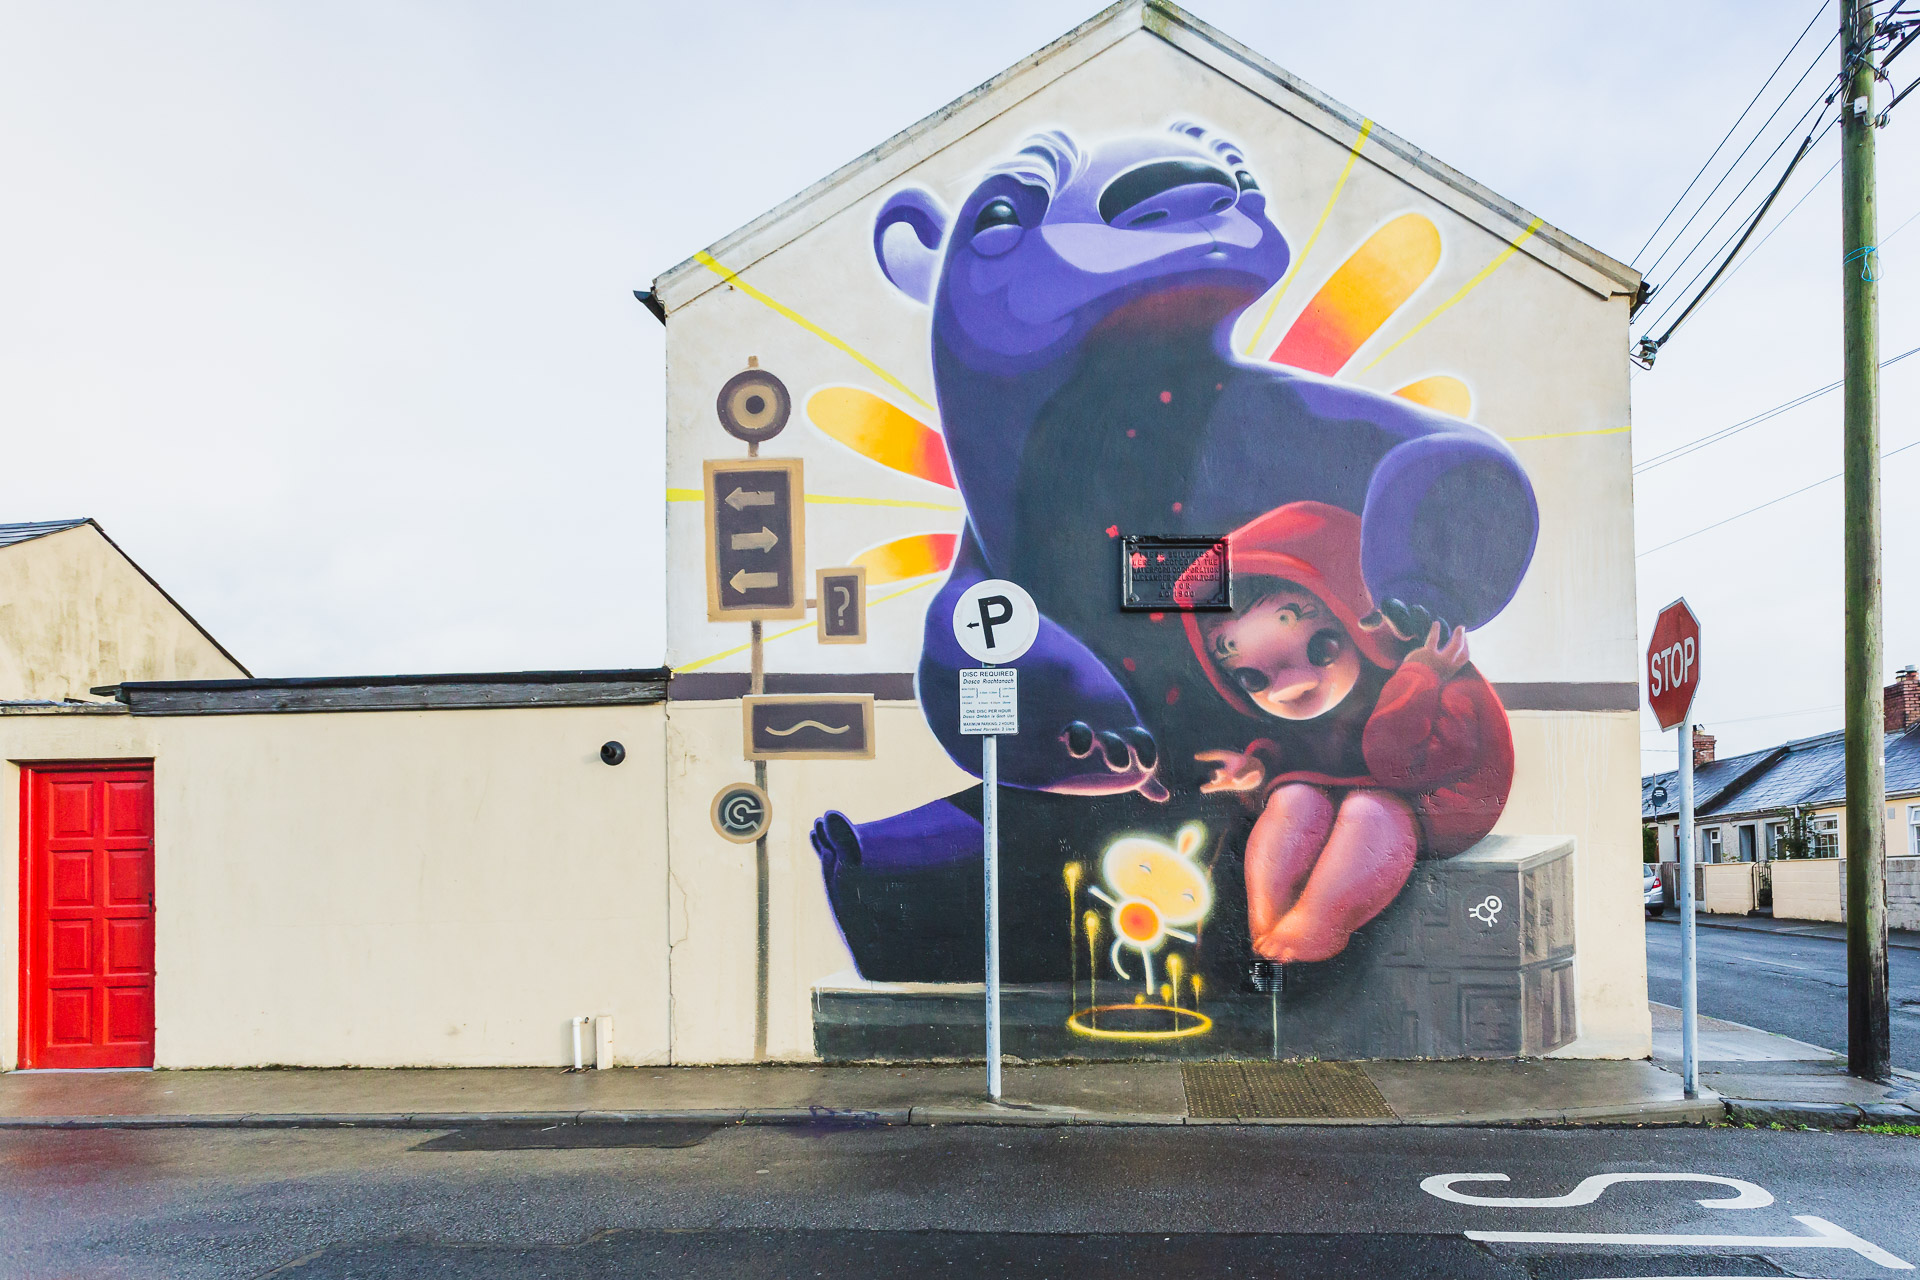 Artist: Animalito (Argentina), Waterford Walls Festival 2018